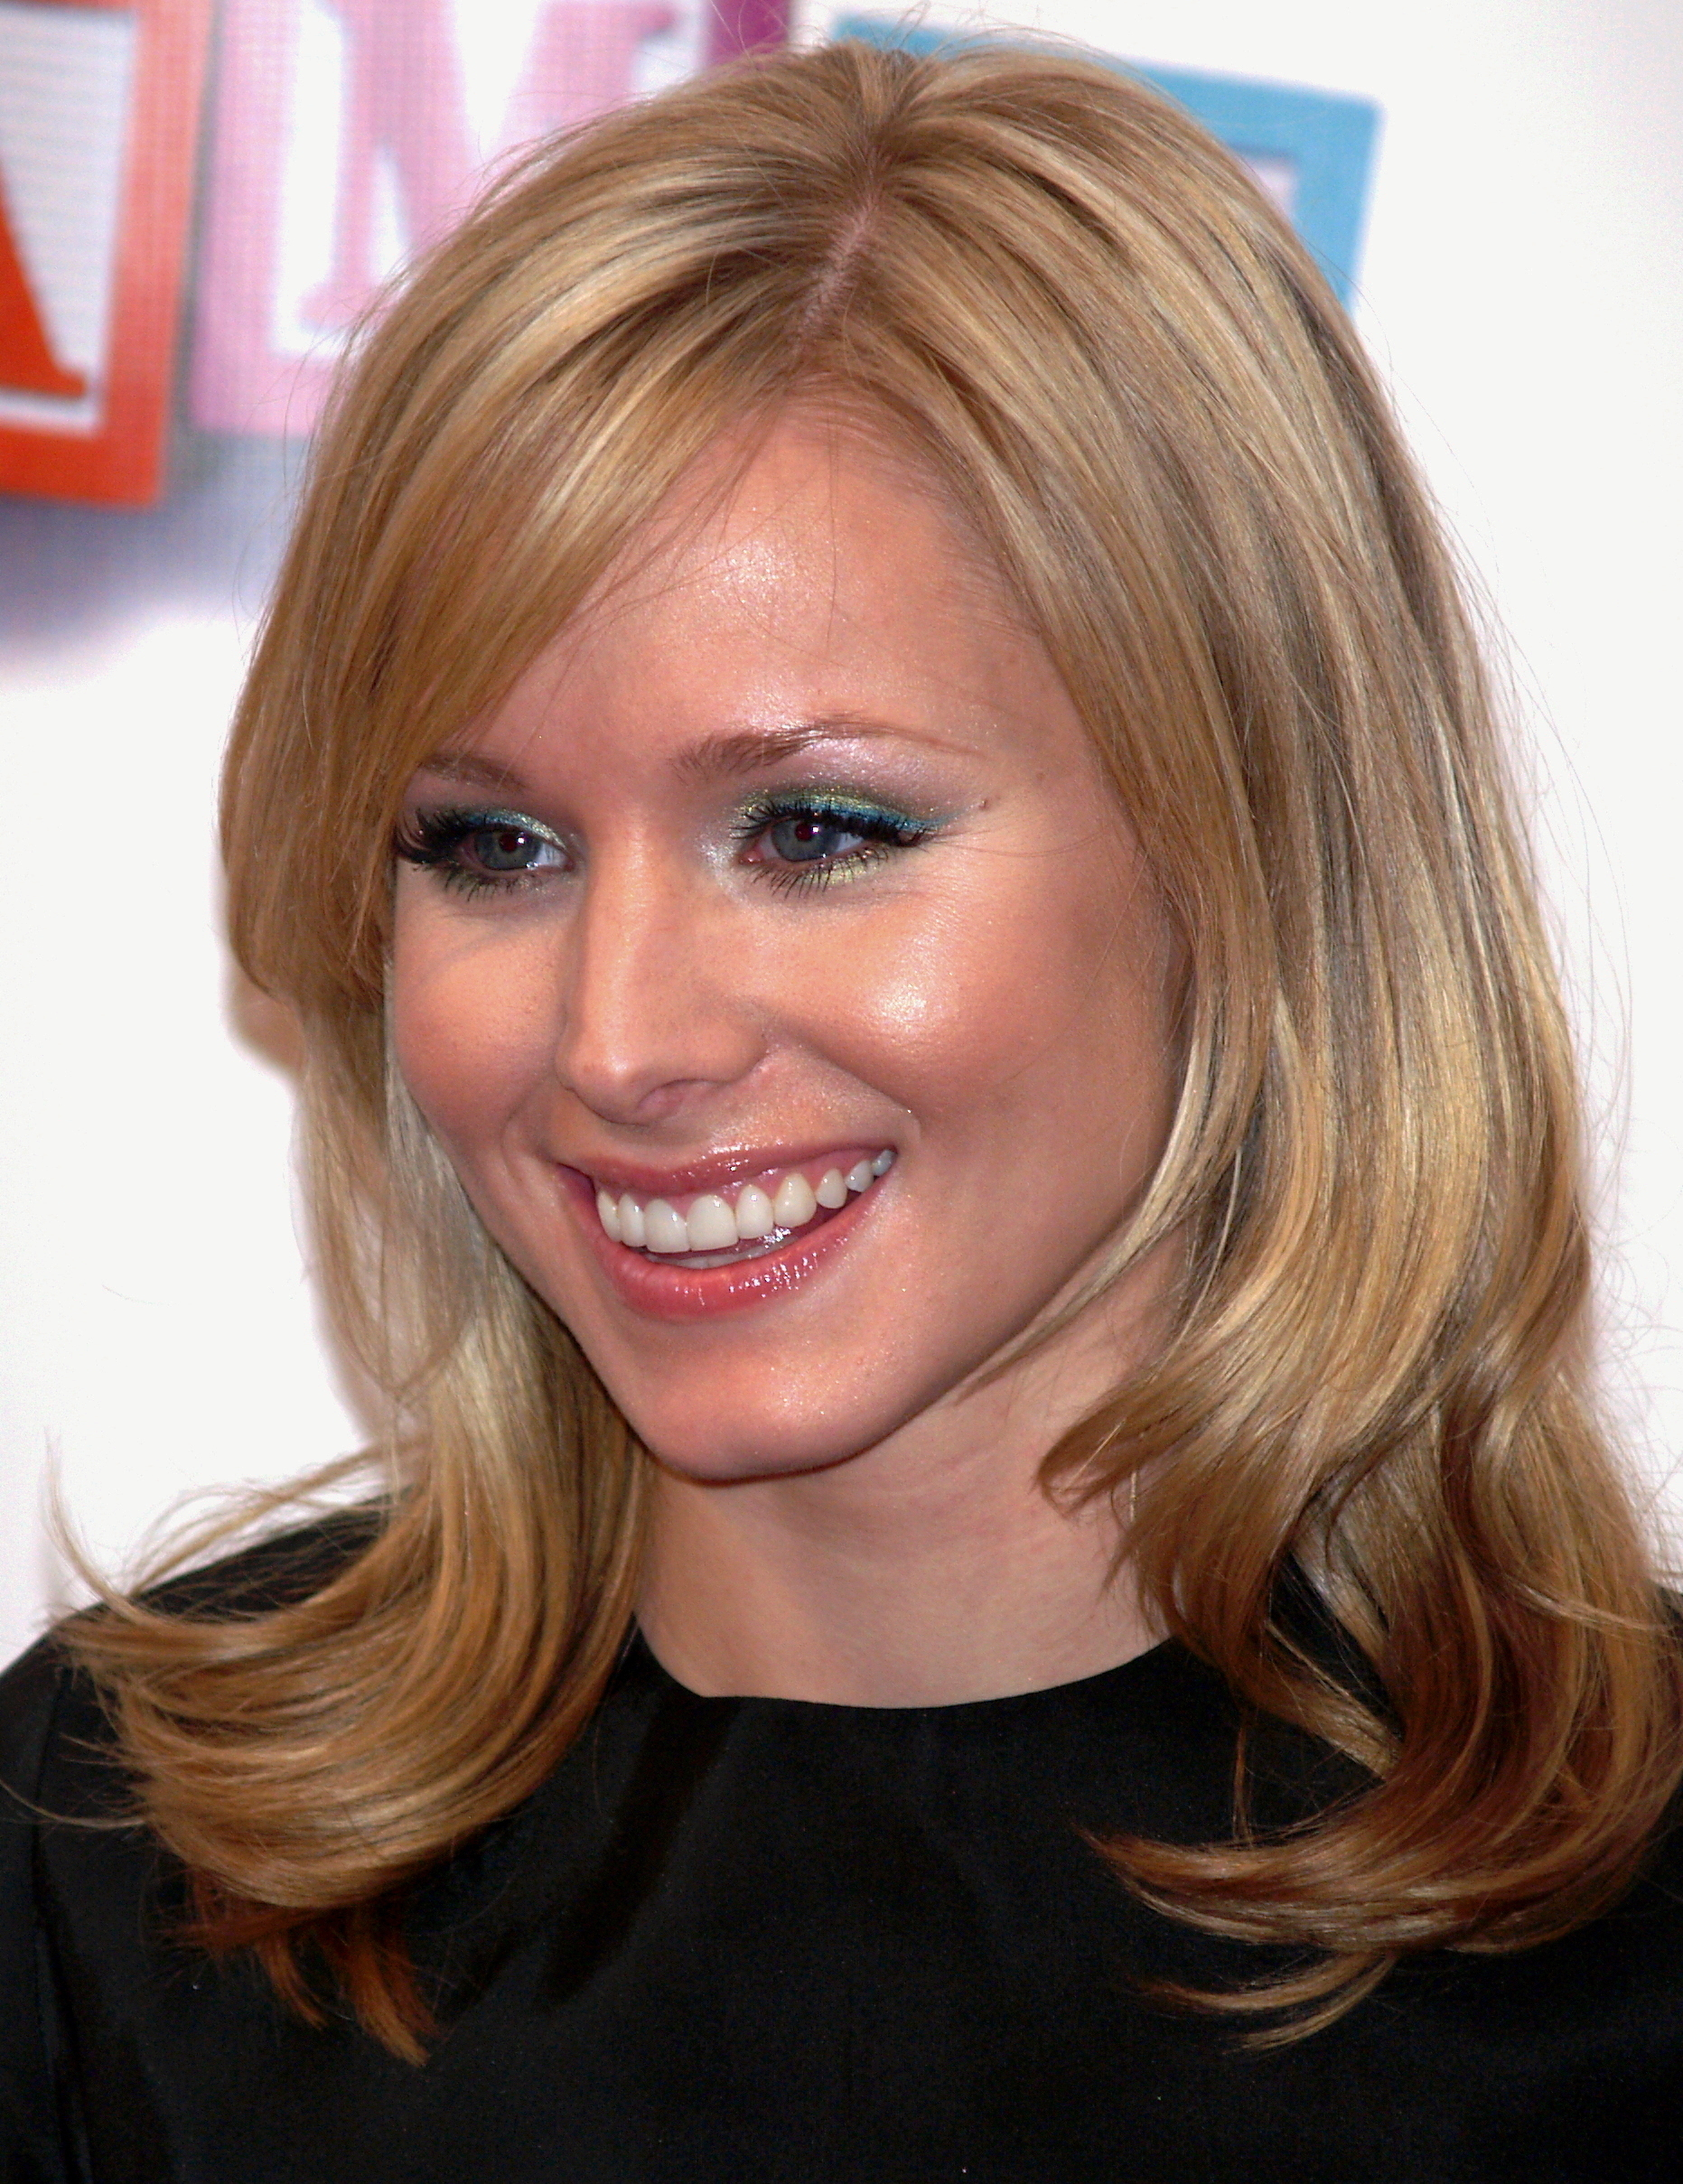 Head and shoulders of young, blond woman with hair curling below her shoulders, smiling.